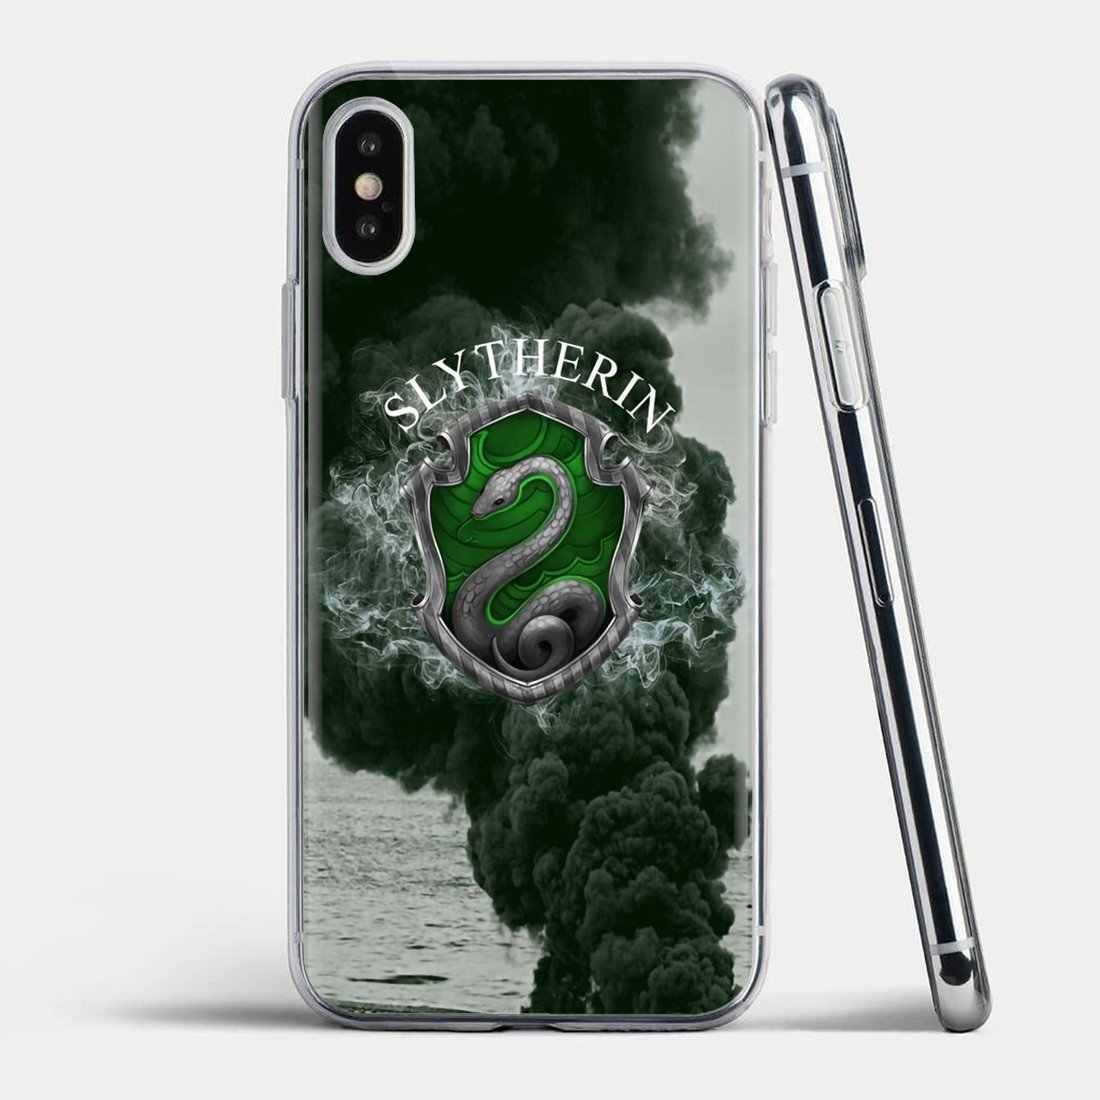 Slytherin School For iPhone 11 Pro 4 4S 5 5S SE 5C 6 6S 7 8 X XR XS Plus iPod Touch 귀여운 실리콘 전화 케이스